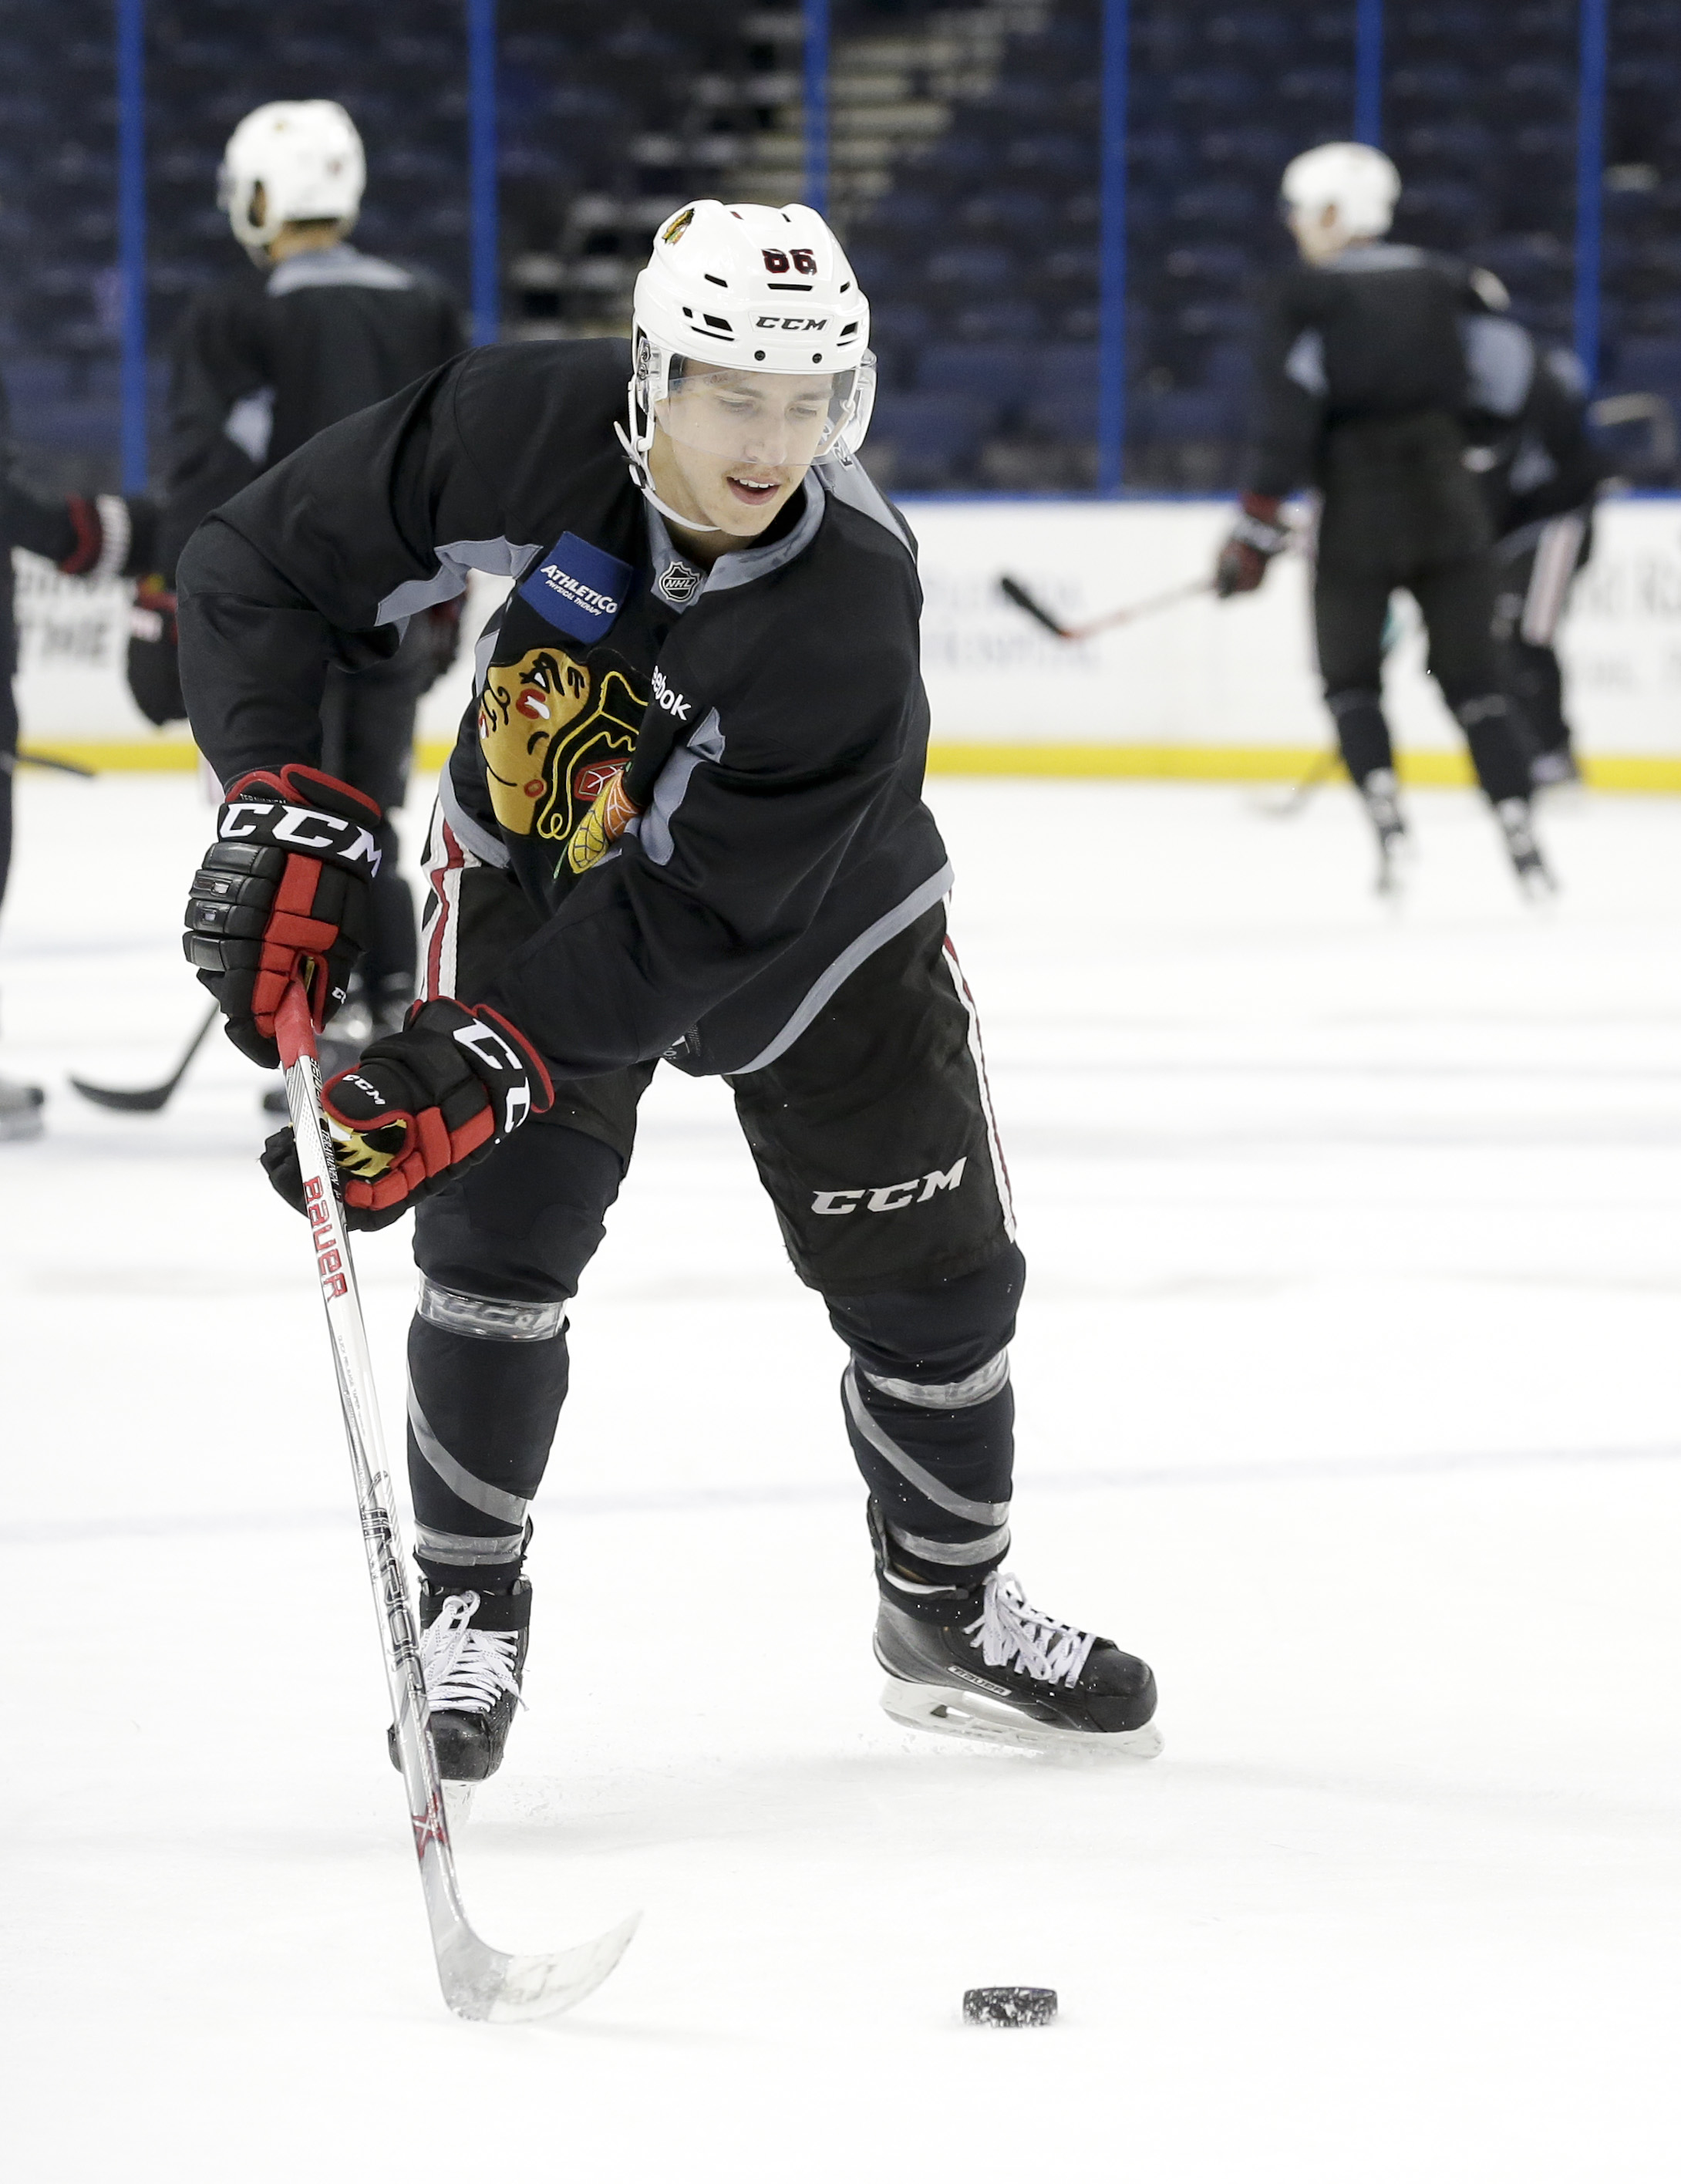 Chicago Blackhawks left wing Teuvo Teravainen shoots during practice at the NHL hockey Stanley Cup Final, Friday, June 5, 2015, in Tampa, Fla. The Blackhawks lead the best-of-seven games series against the Tampa Bay Lightning 1-0. Game 2 is scheduled for